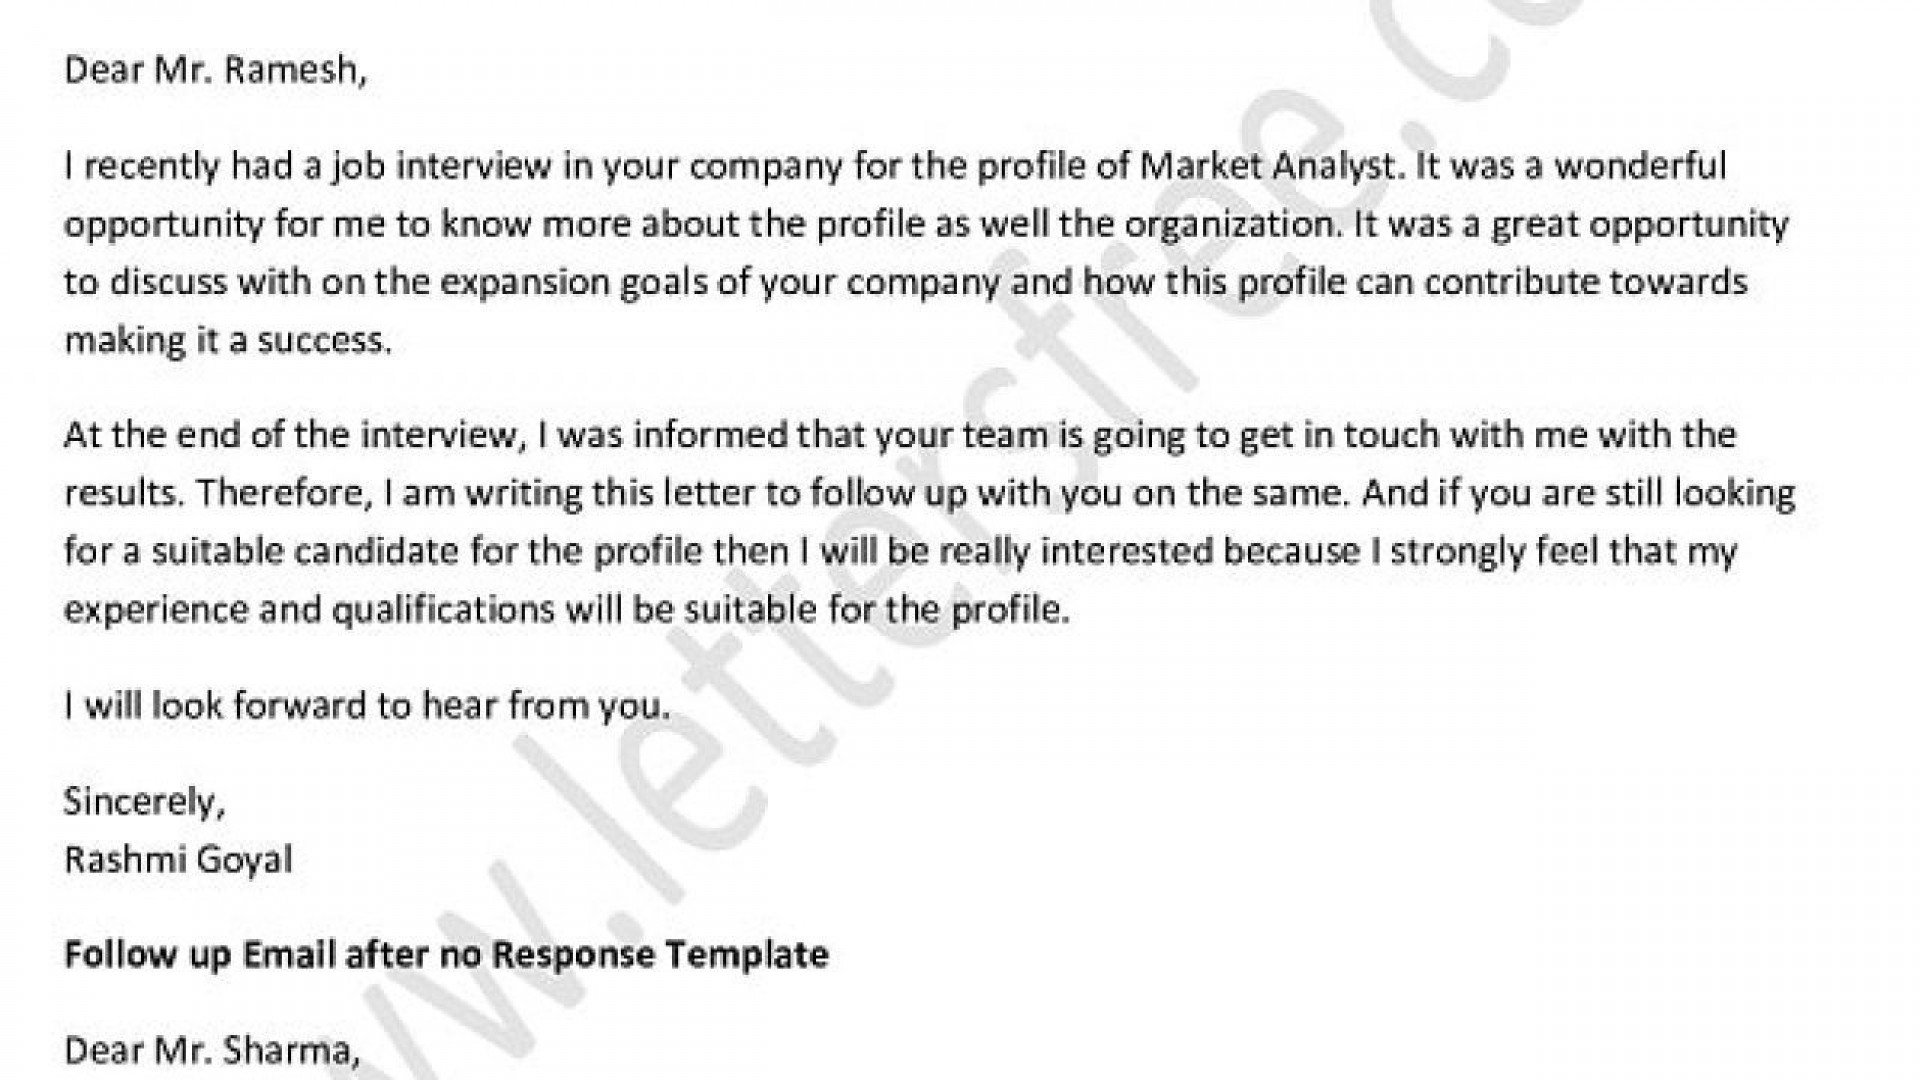 004 Formidable Follow Up Email Sample After No Response Template High Definition 1920